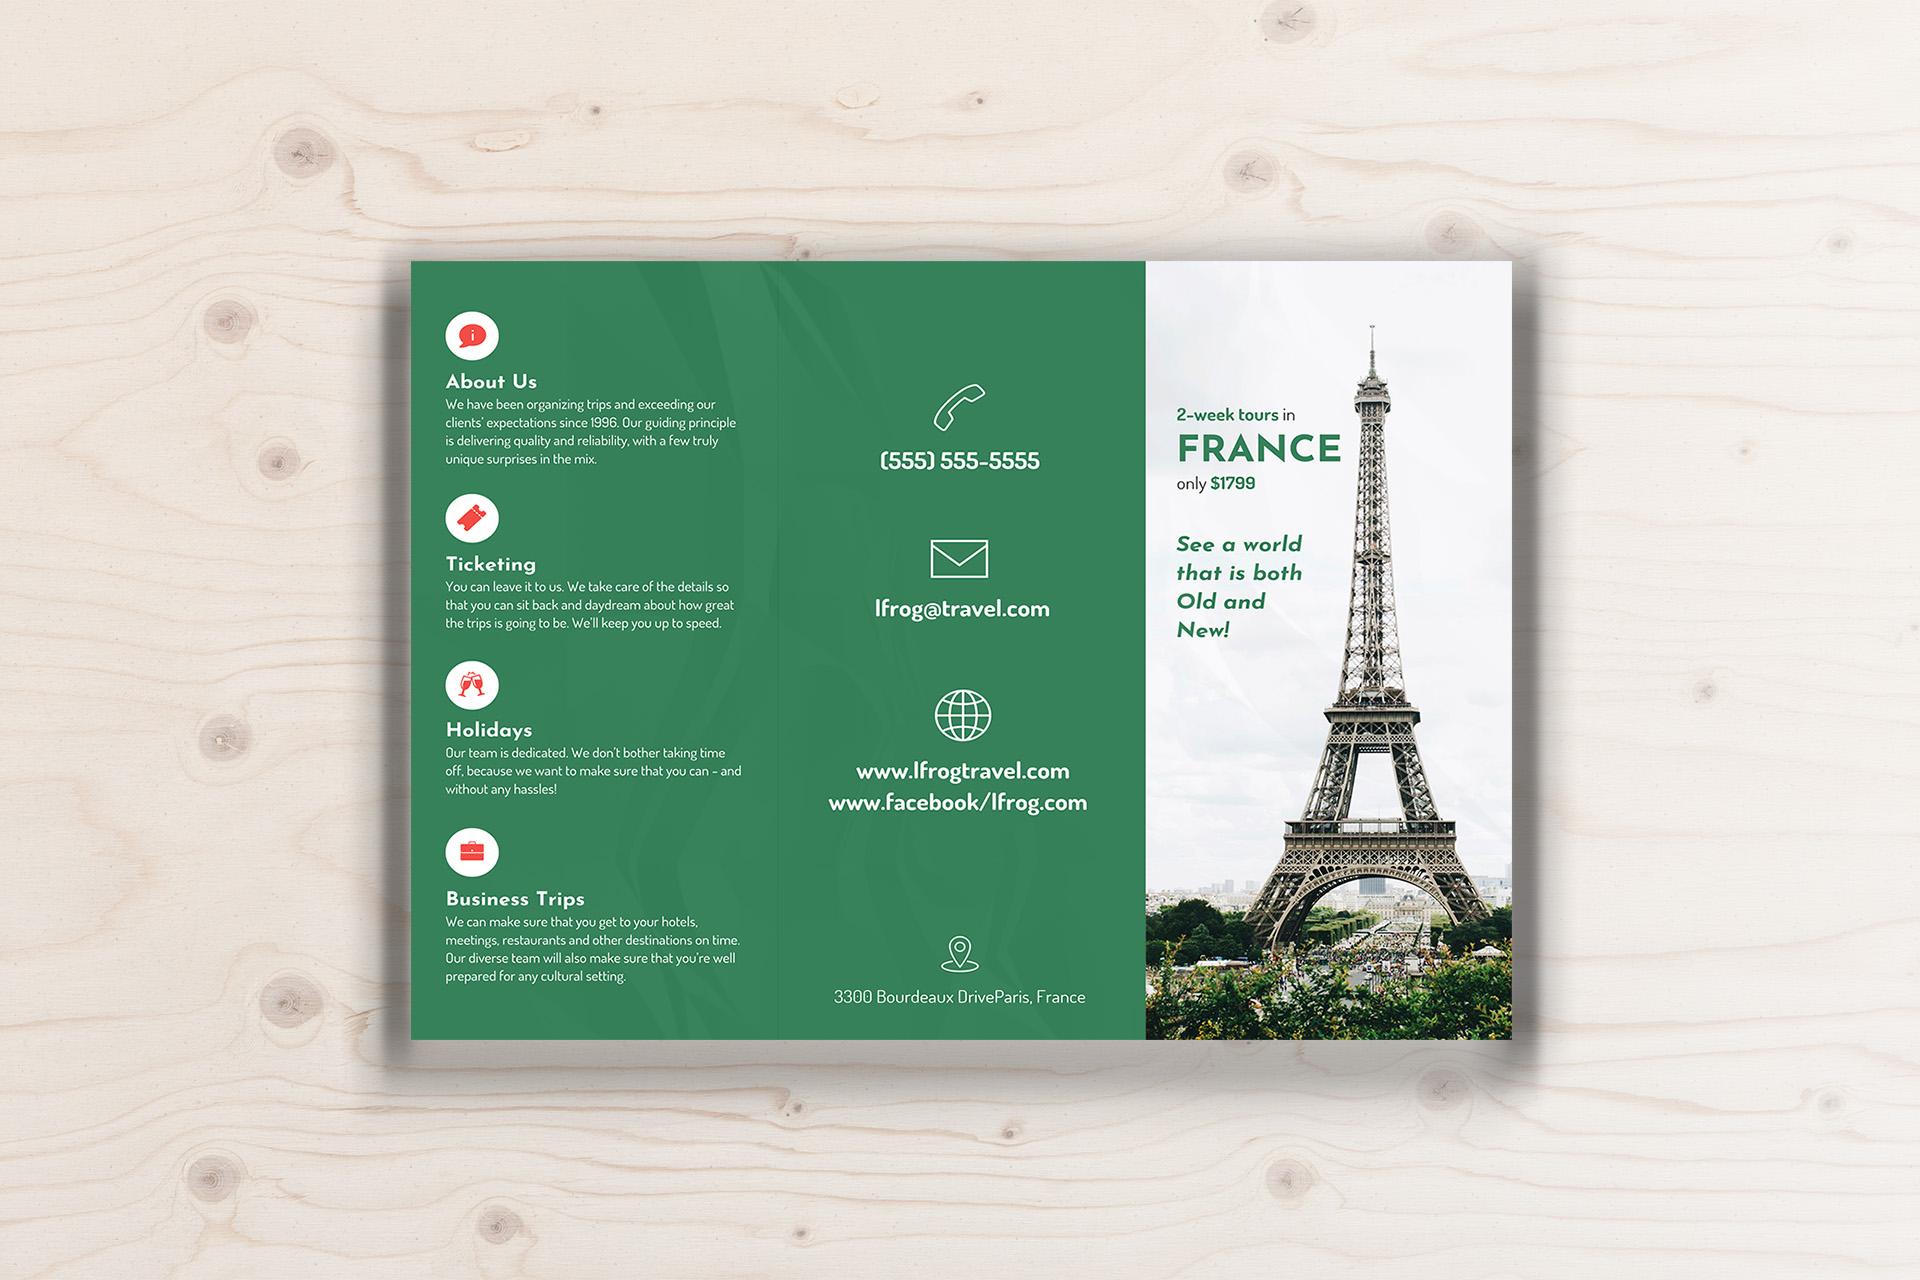 Green Photo Centric Trifold Travel Brochure Idea